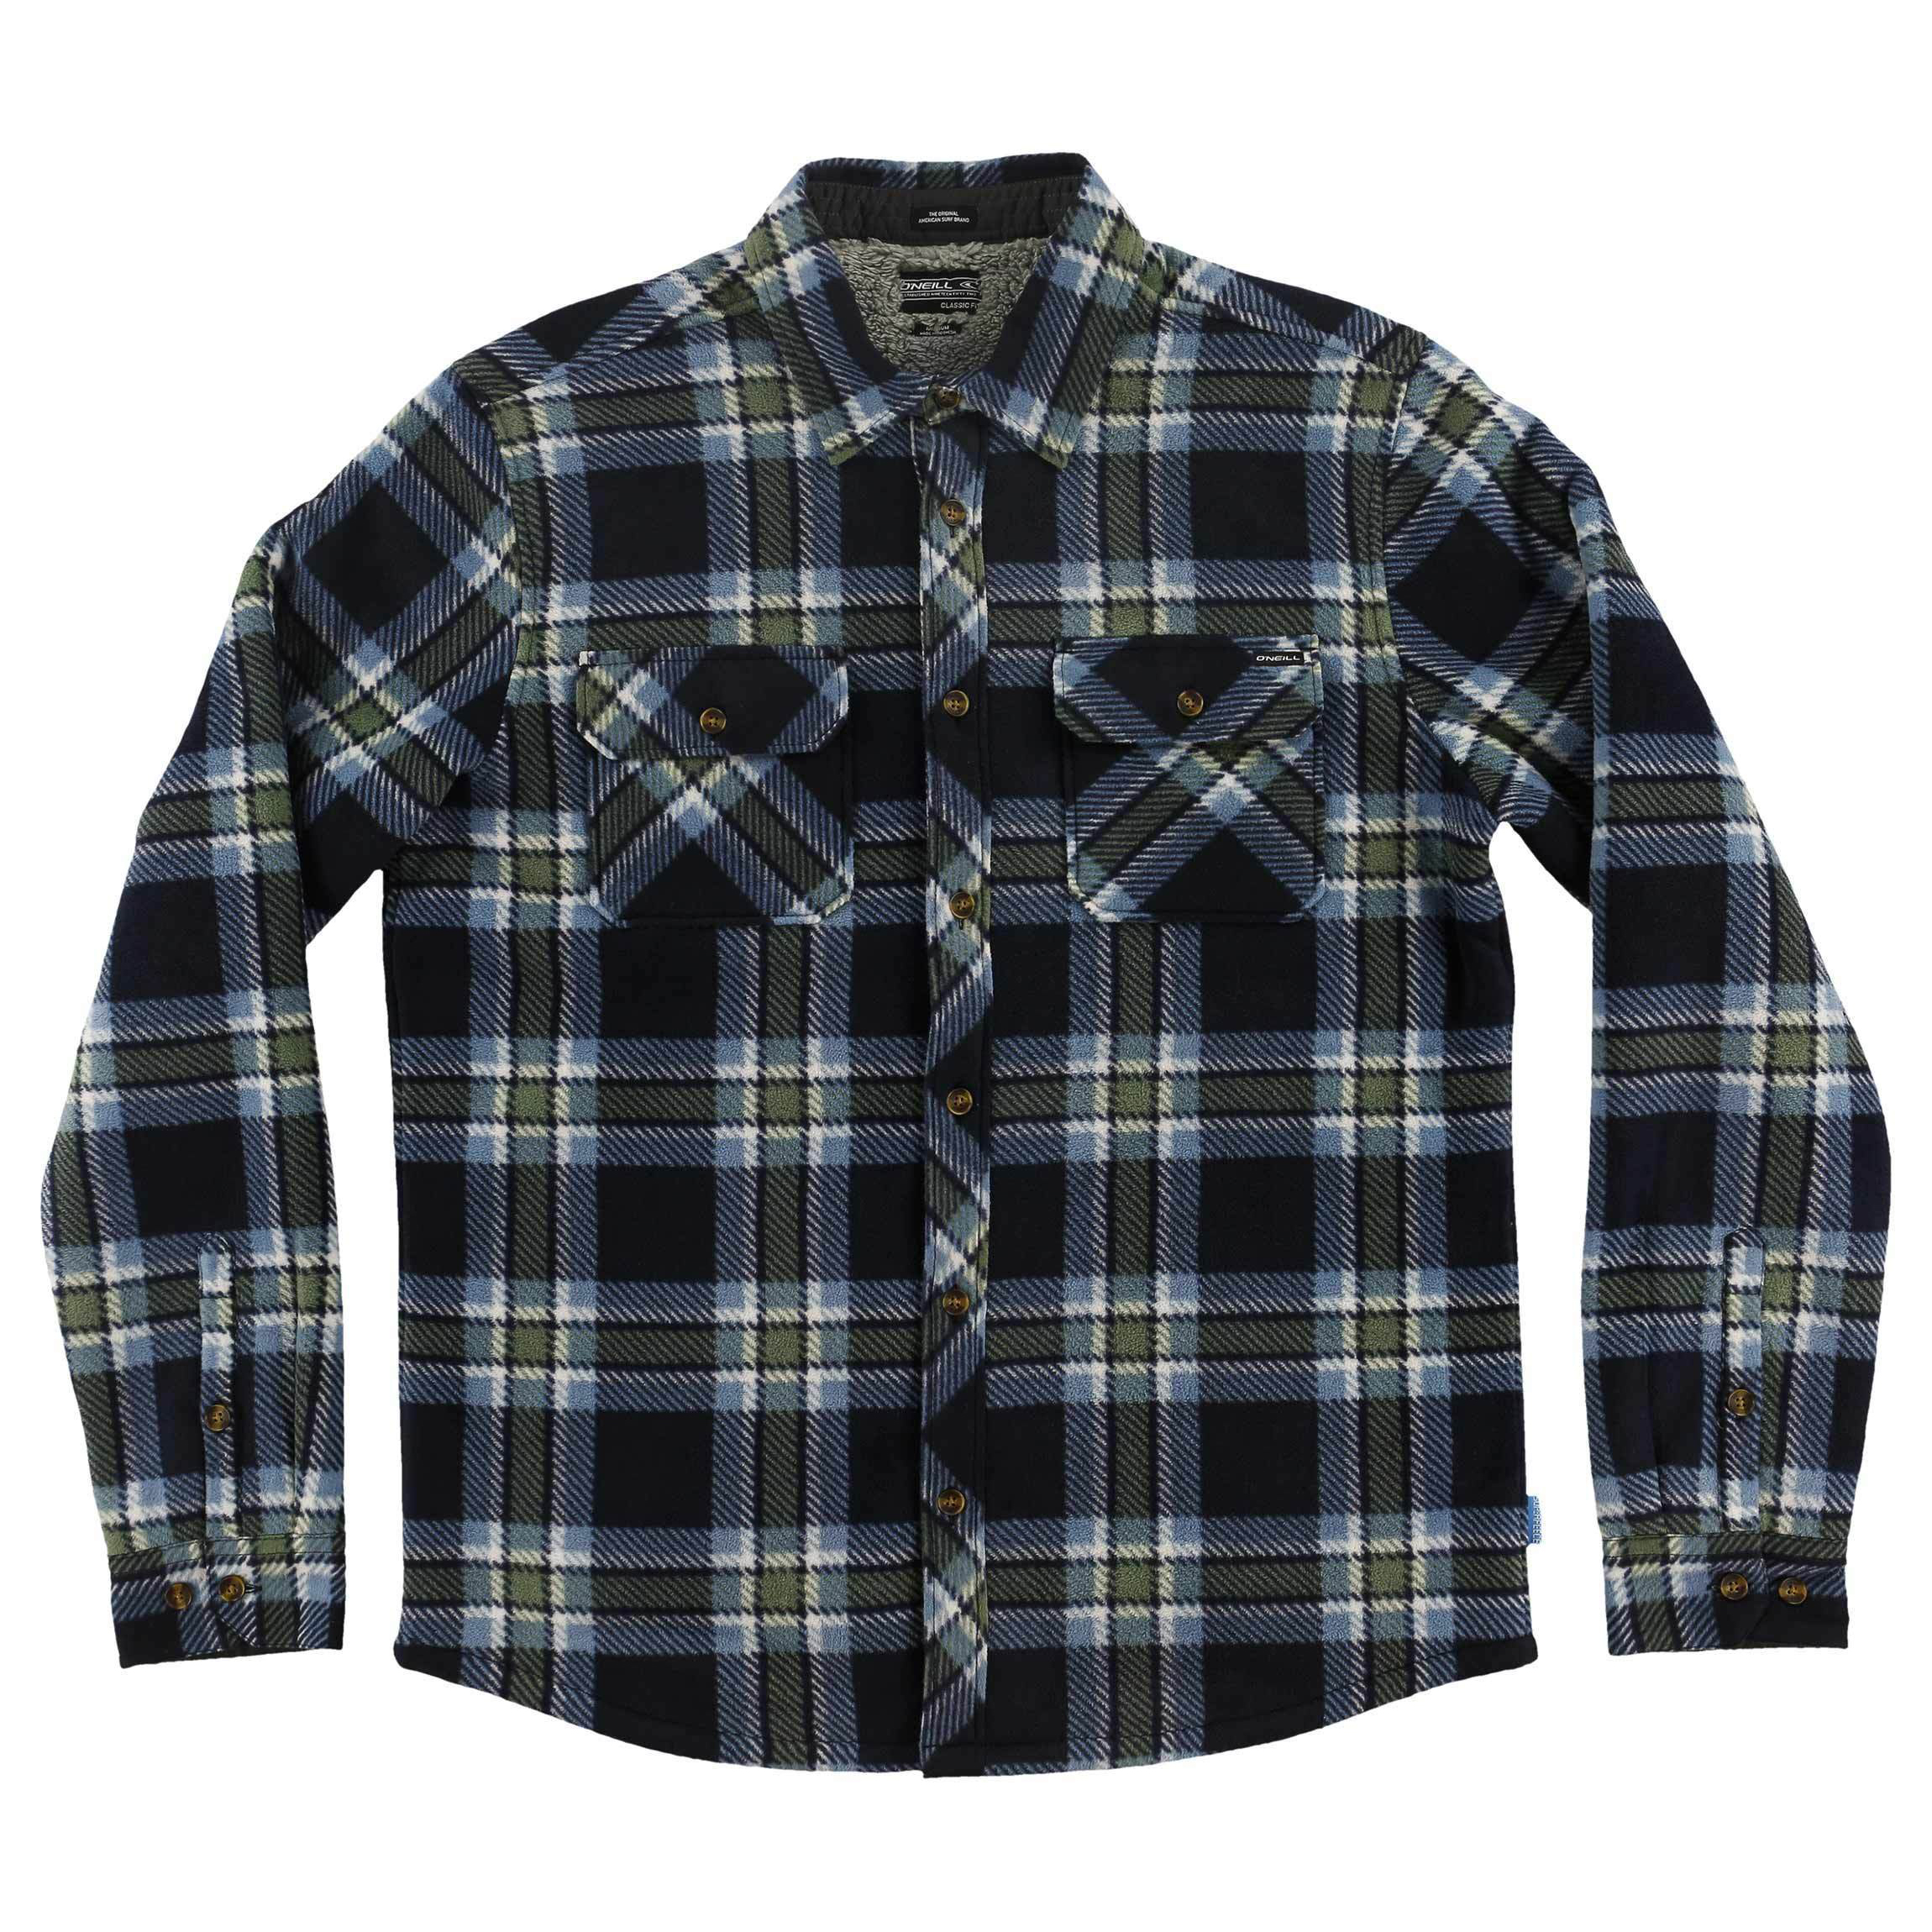 O'NEILL GLACIER HEAT DOME SUPERFLEECE FLANNEL SHIRT (HO7104210)